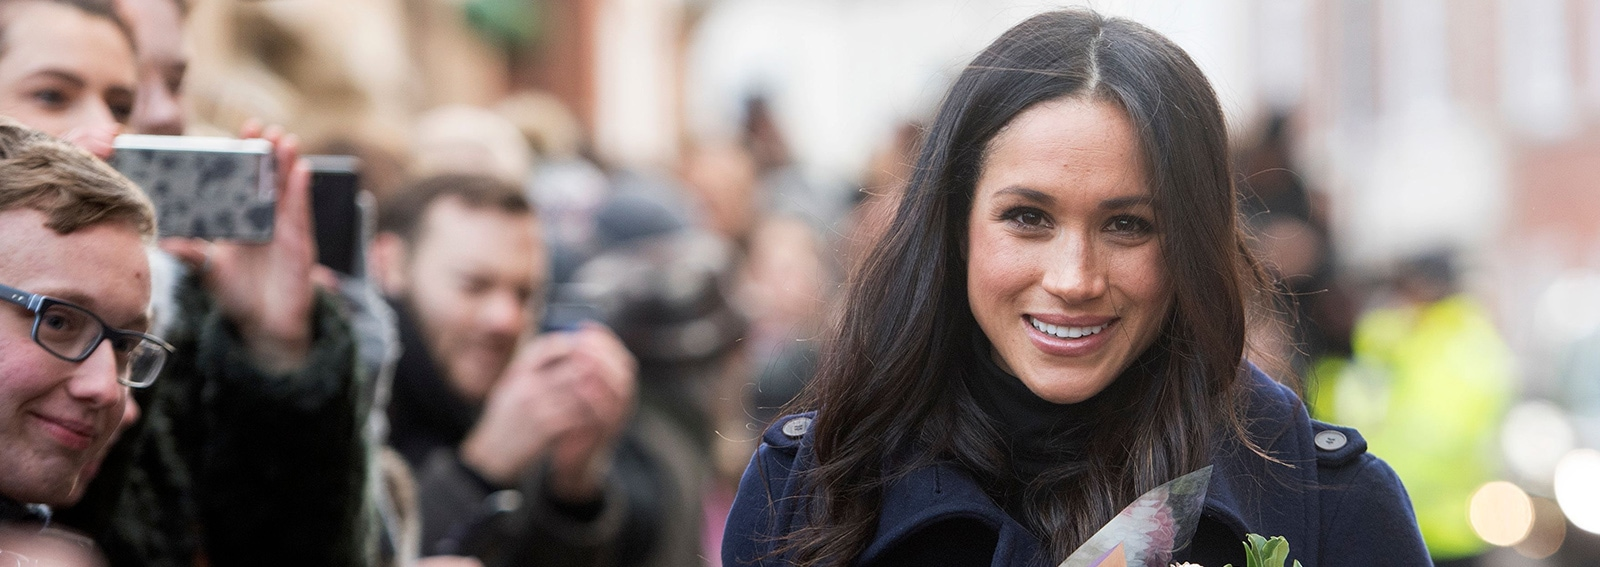 cover victoria beckham meghan markle amiche